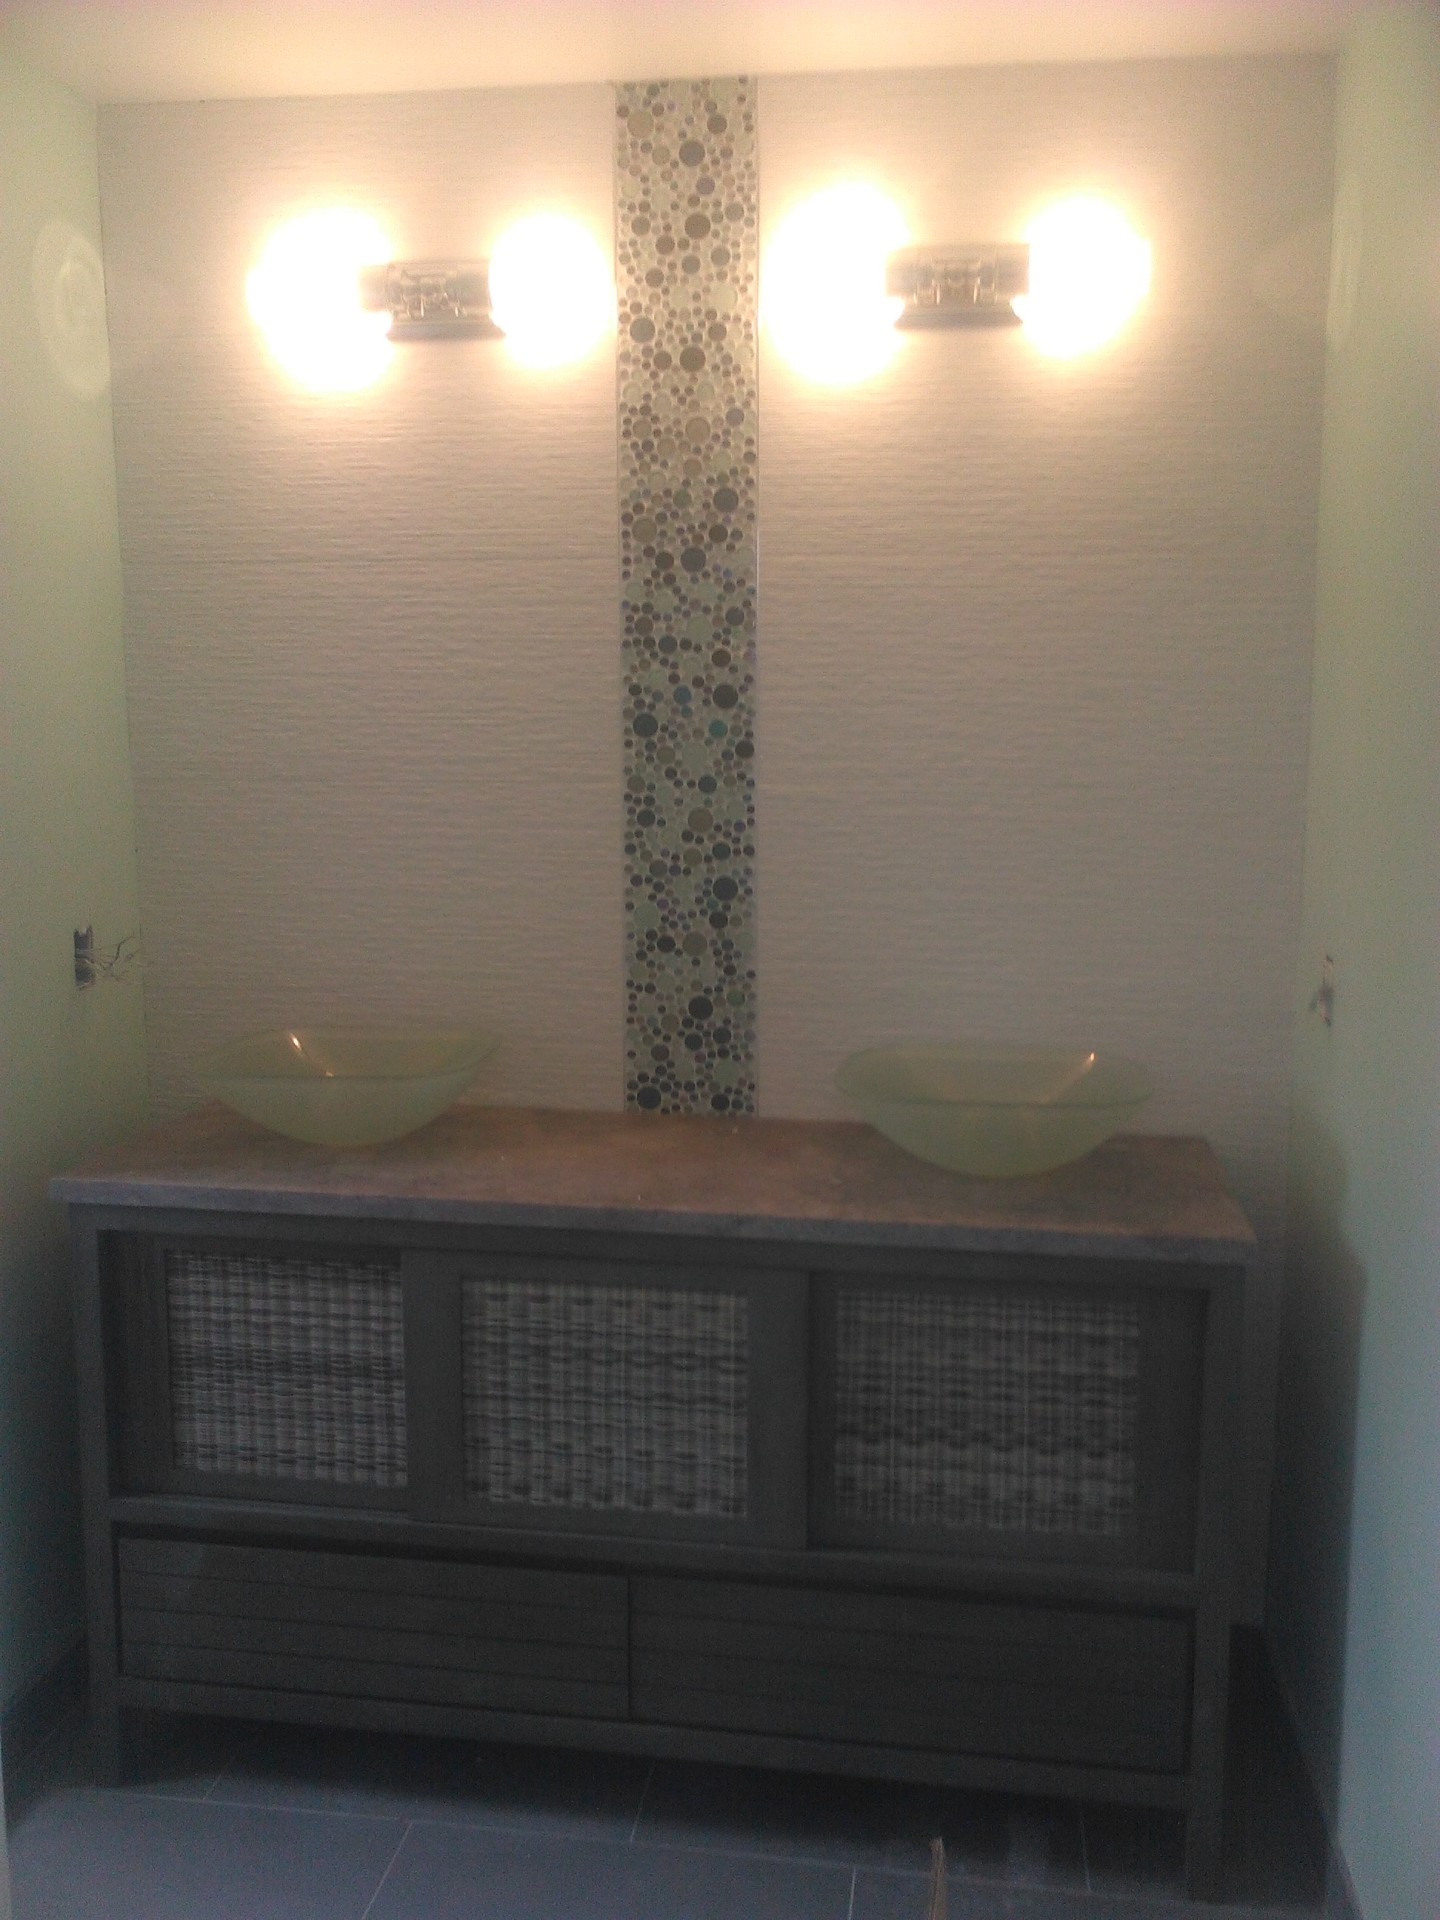 Completed Bath Room